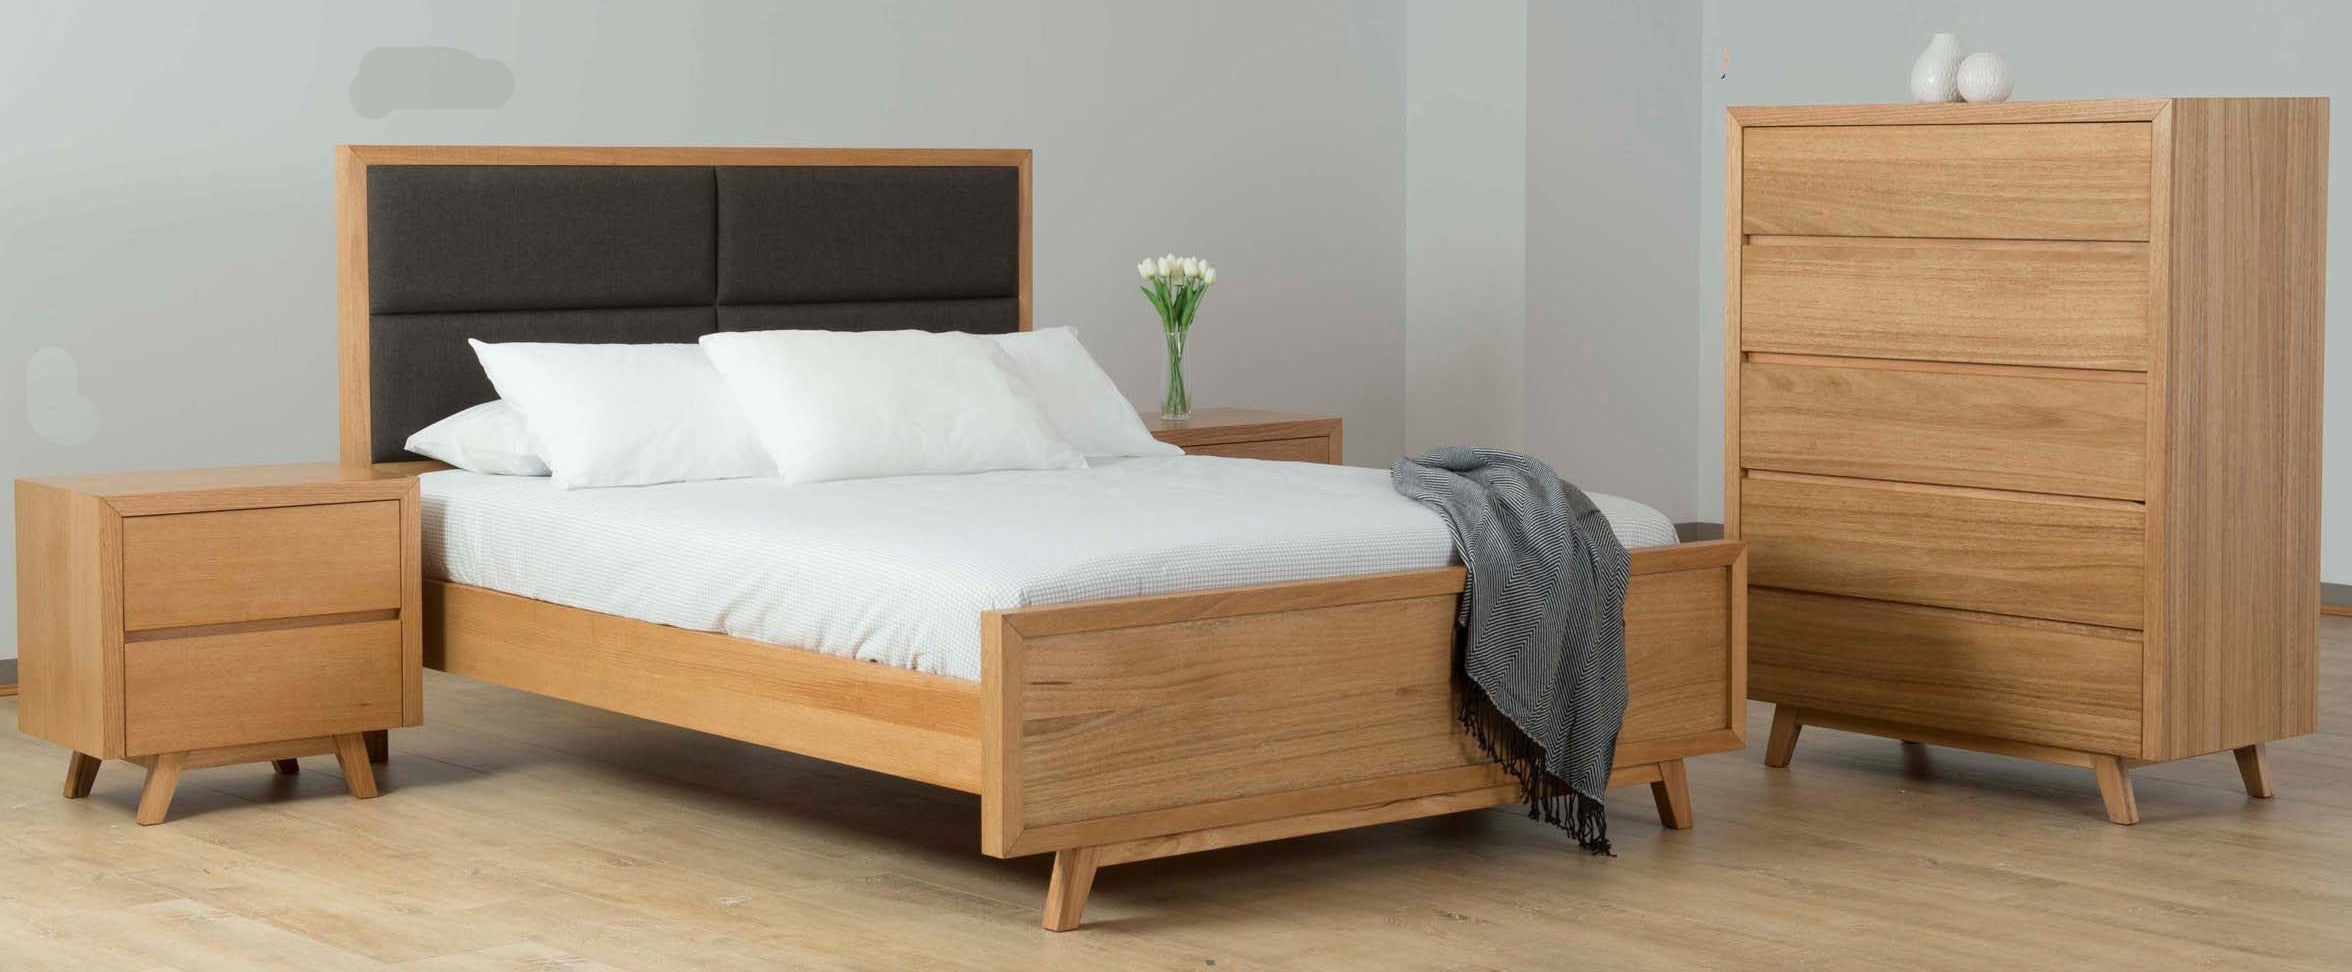 Blair Bedroom Furniture Adelaide Furniture And Electrical